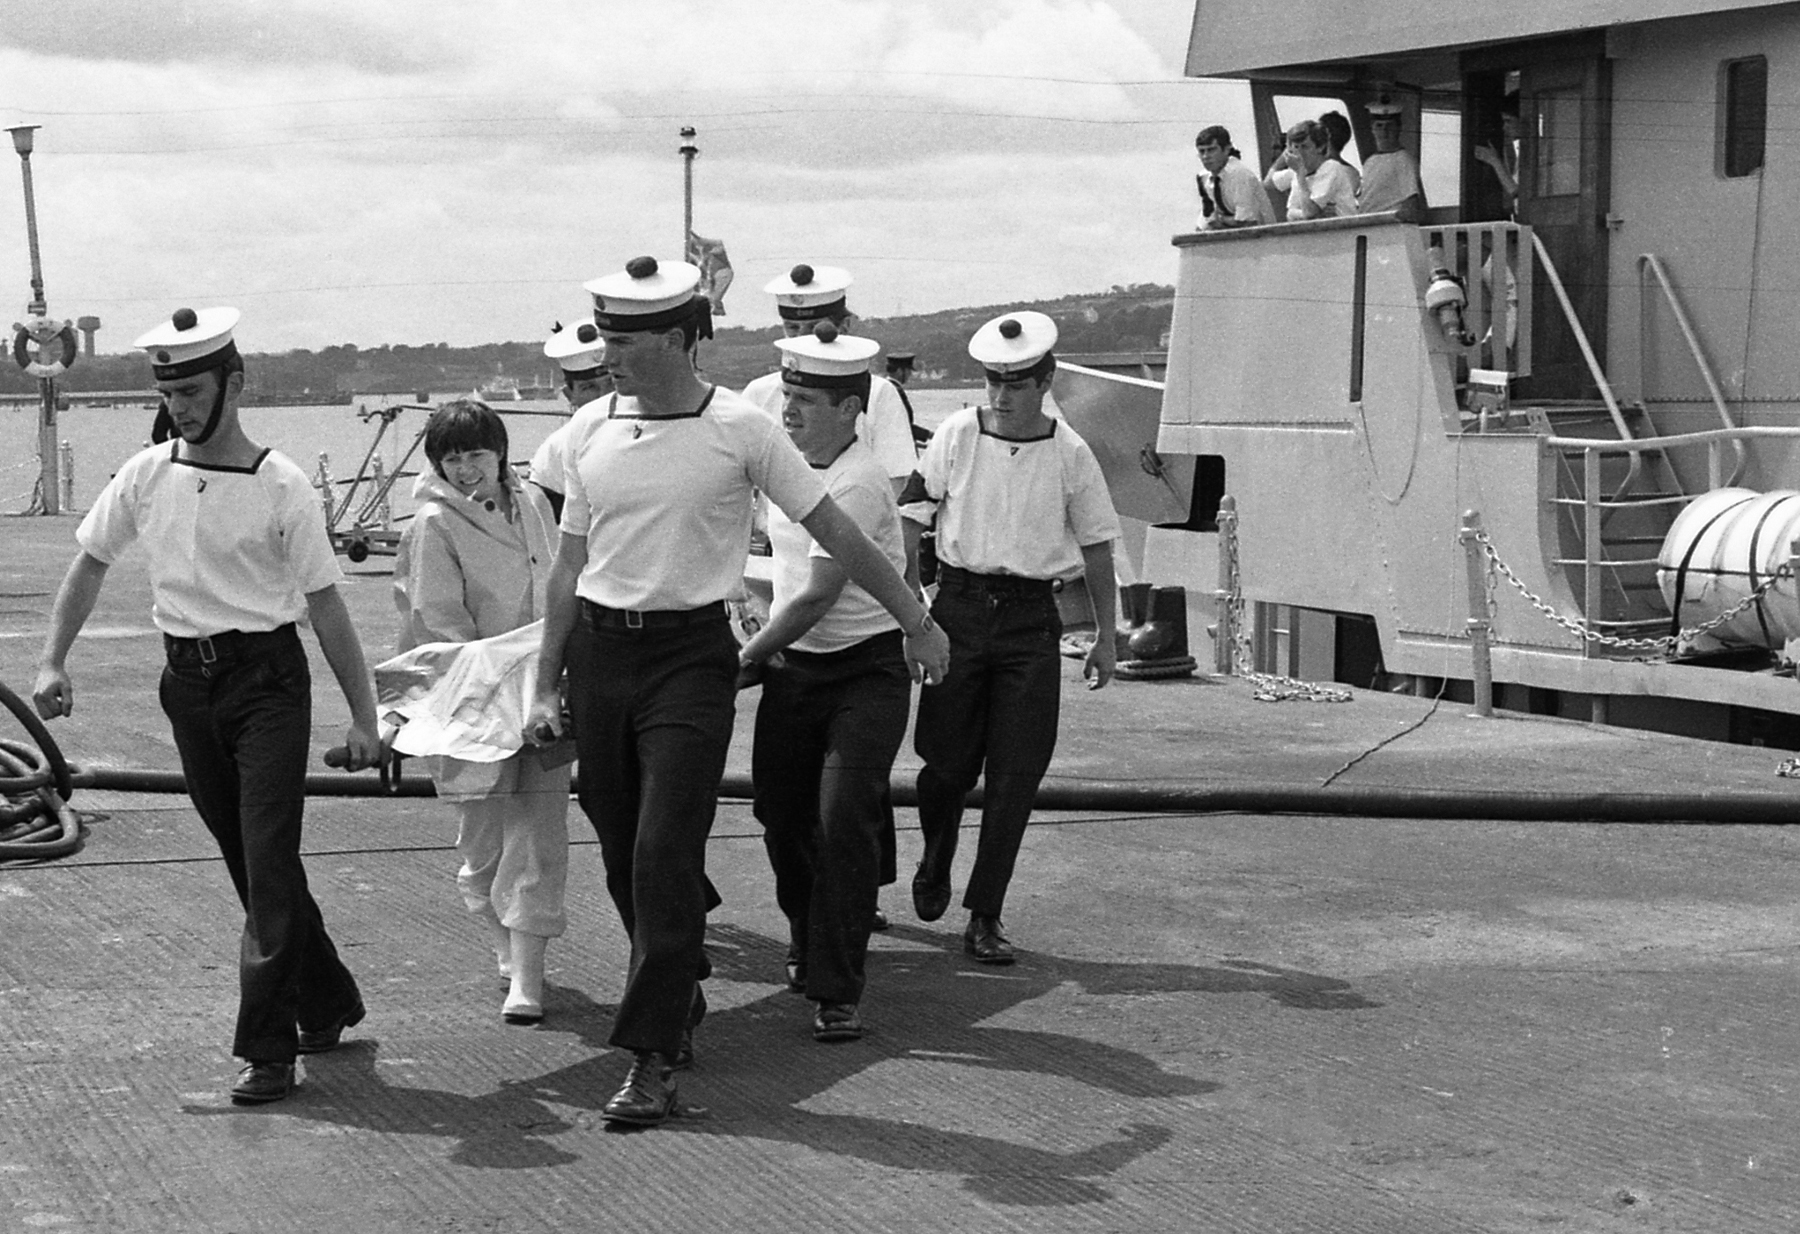 Irish Naval Service personnel remove the body of a victim of Air India Flight-182 terrorist attack from the LÉ Aisling which was sent to search for survivors on 23 June 1985. Credit: Irish Defence Forces [CC BY 2.0]